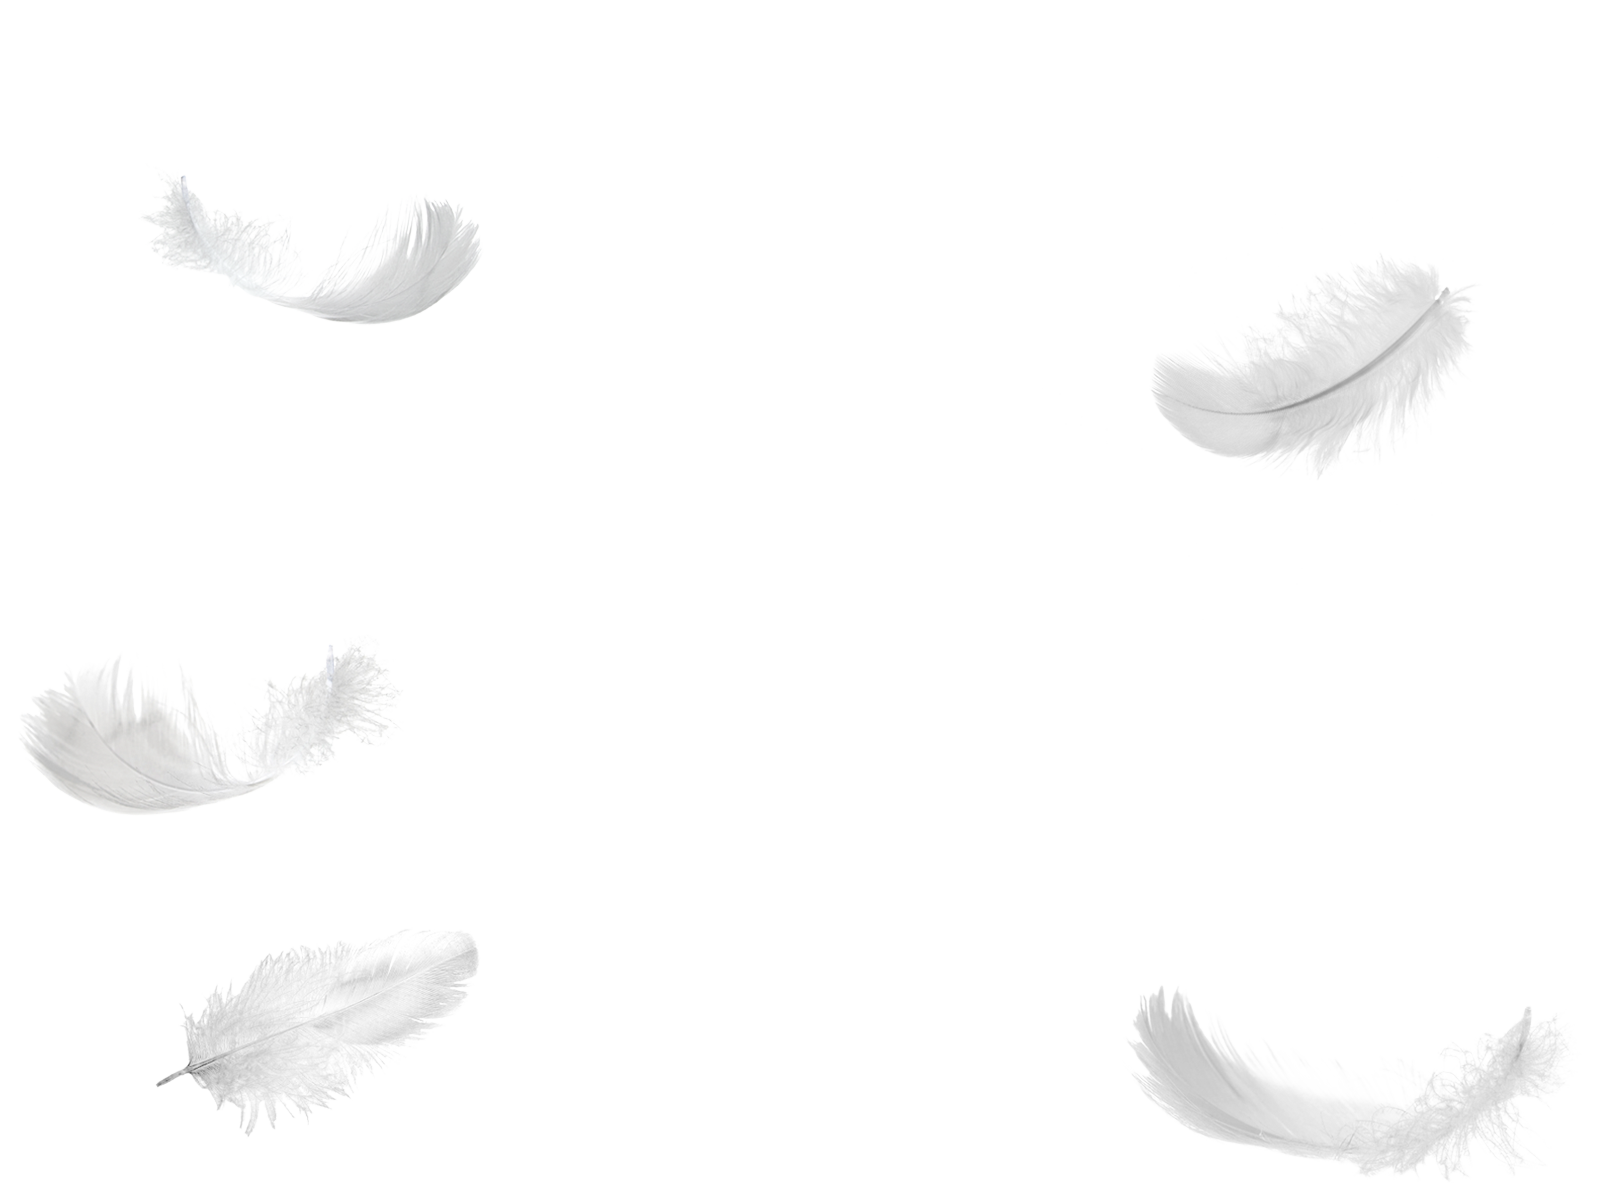 Feathers transparent png